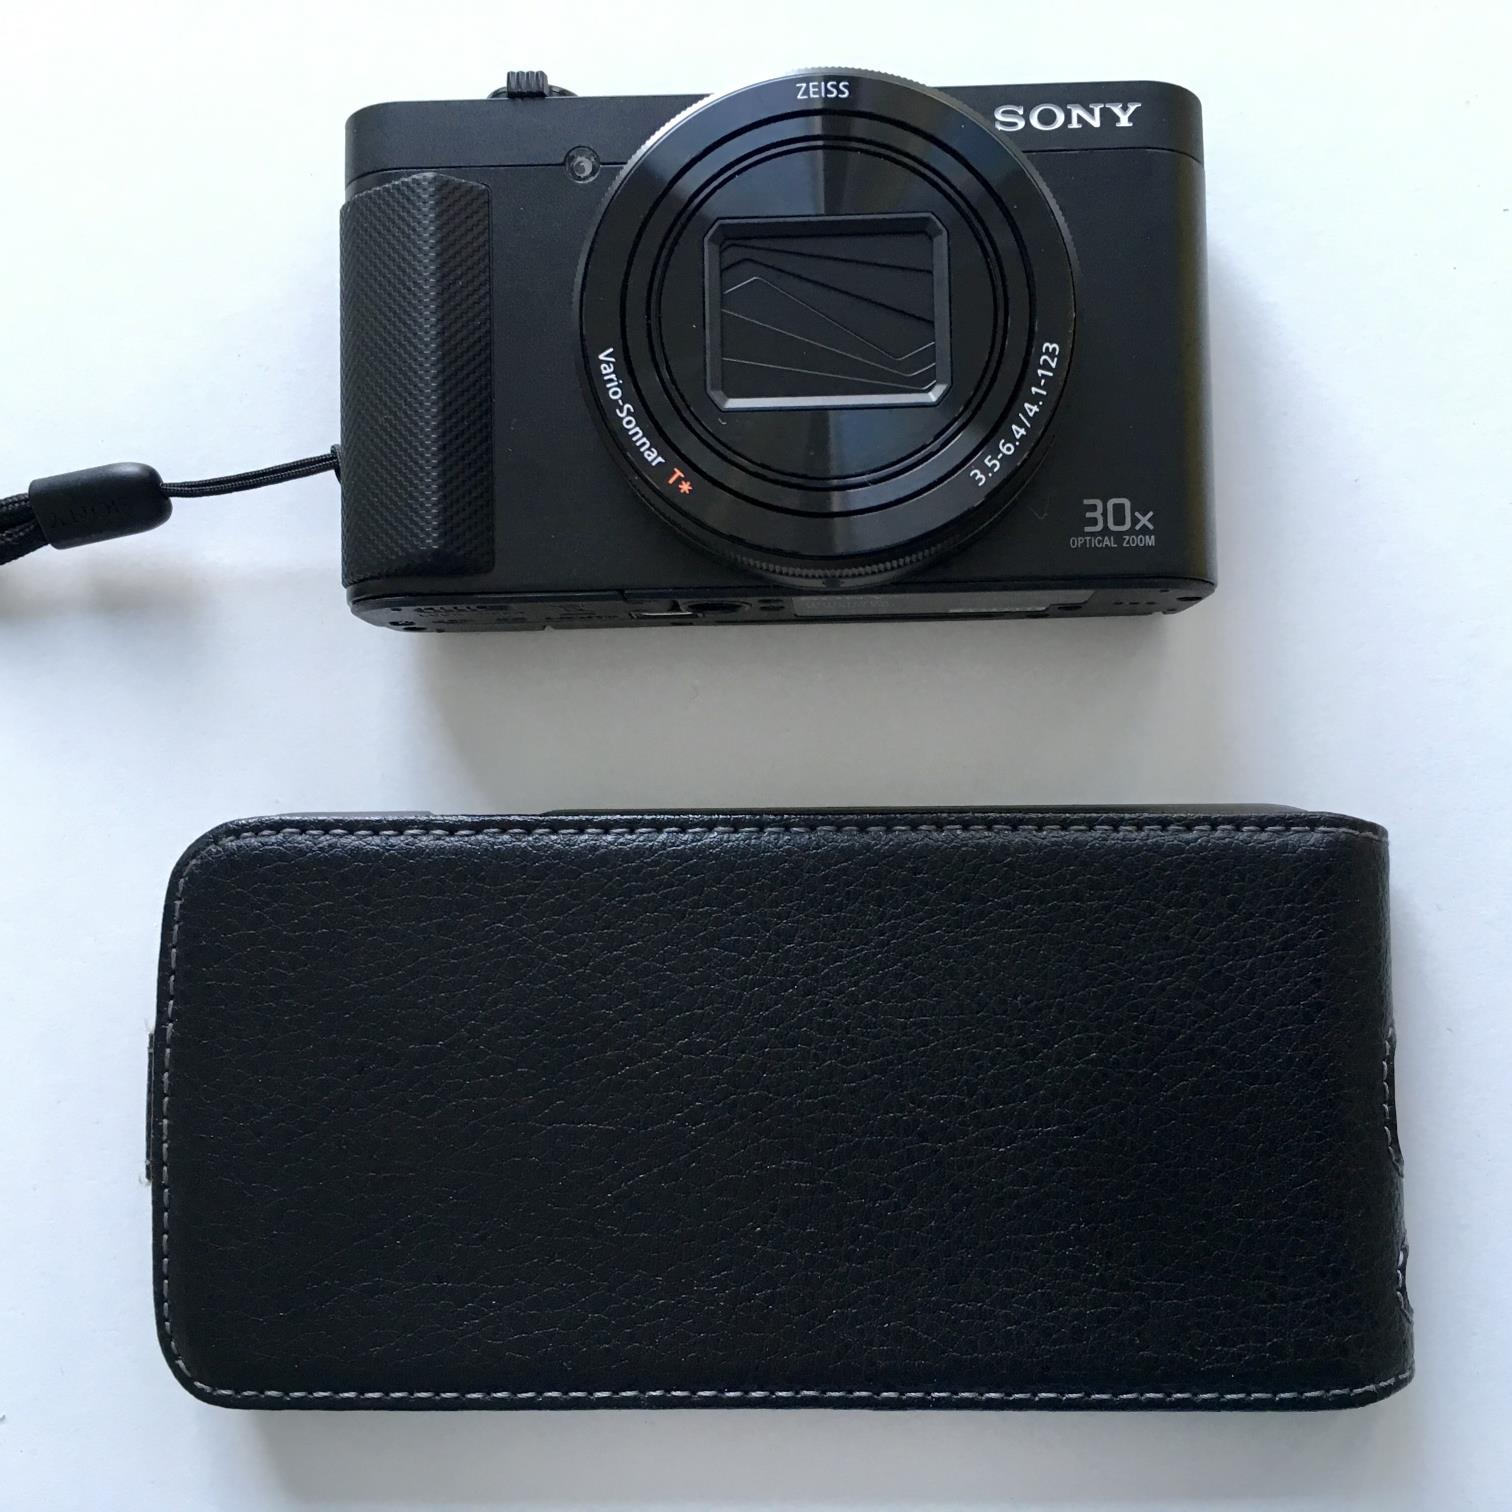 Sony DSC-HX90 vs iPhone 6s